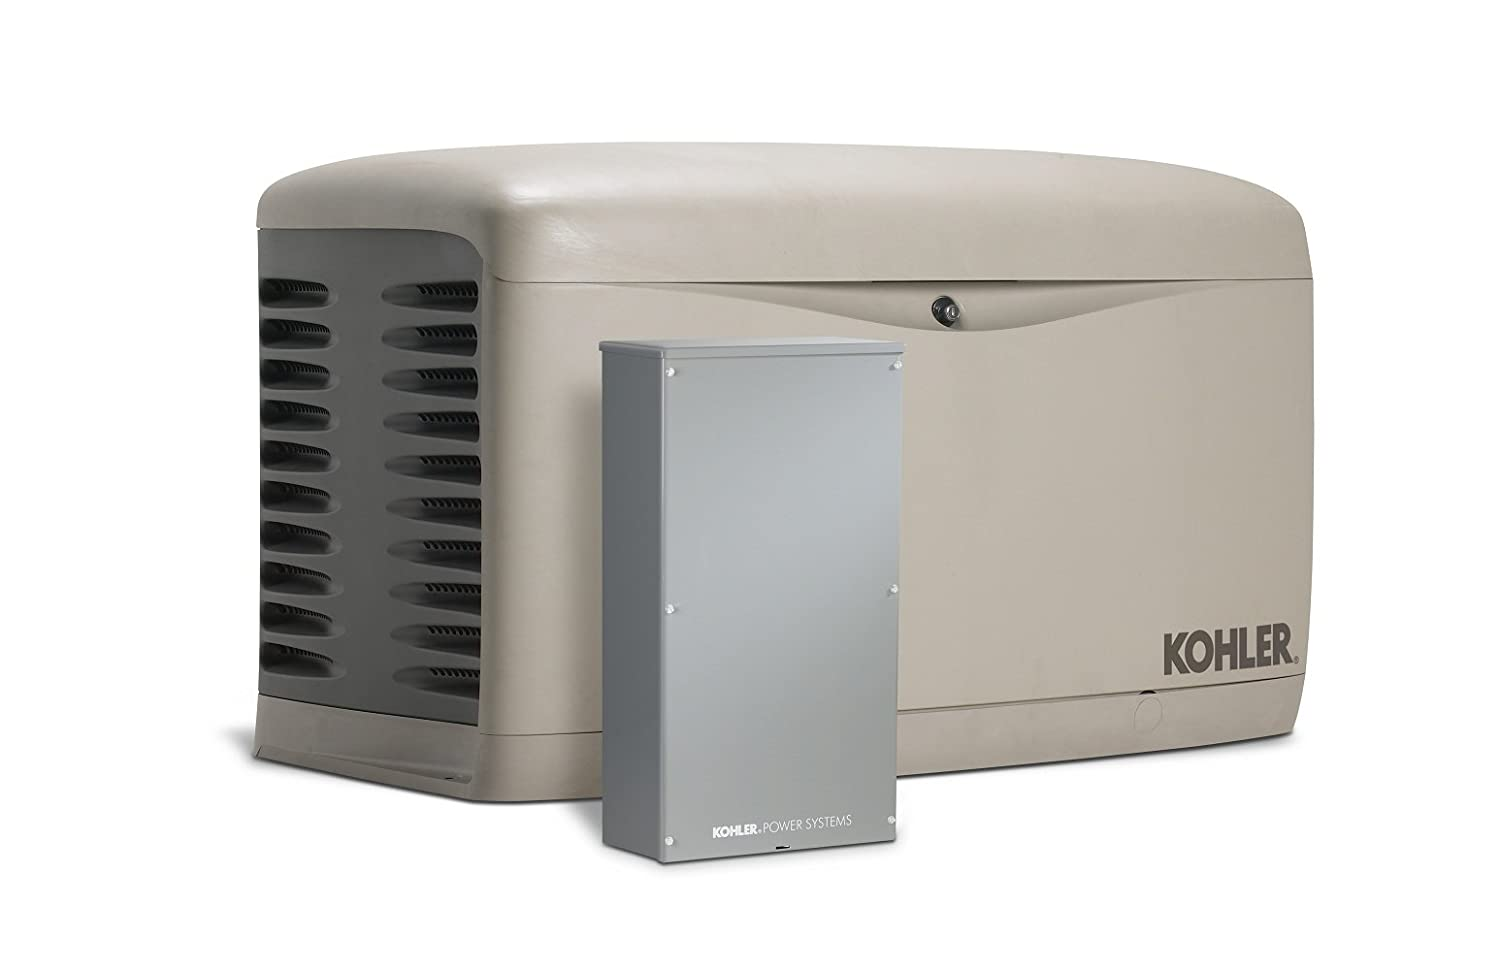 Amazon.com : Kohler 14RESAL-200SELS 14, 000-Watt Air-Cooled Standby ...